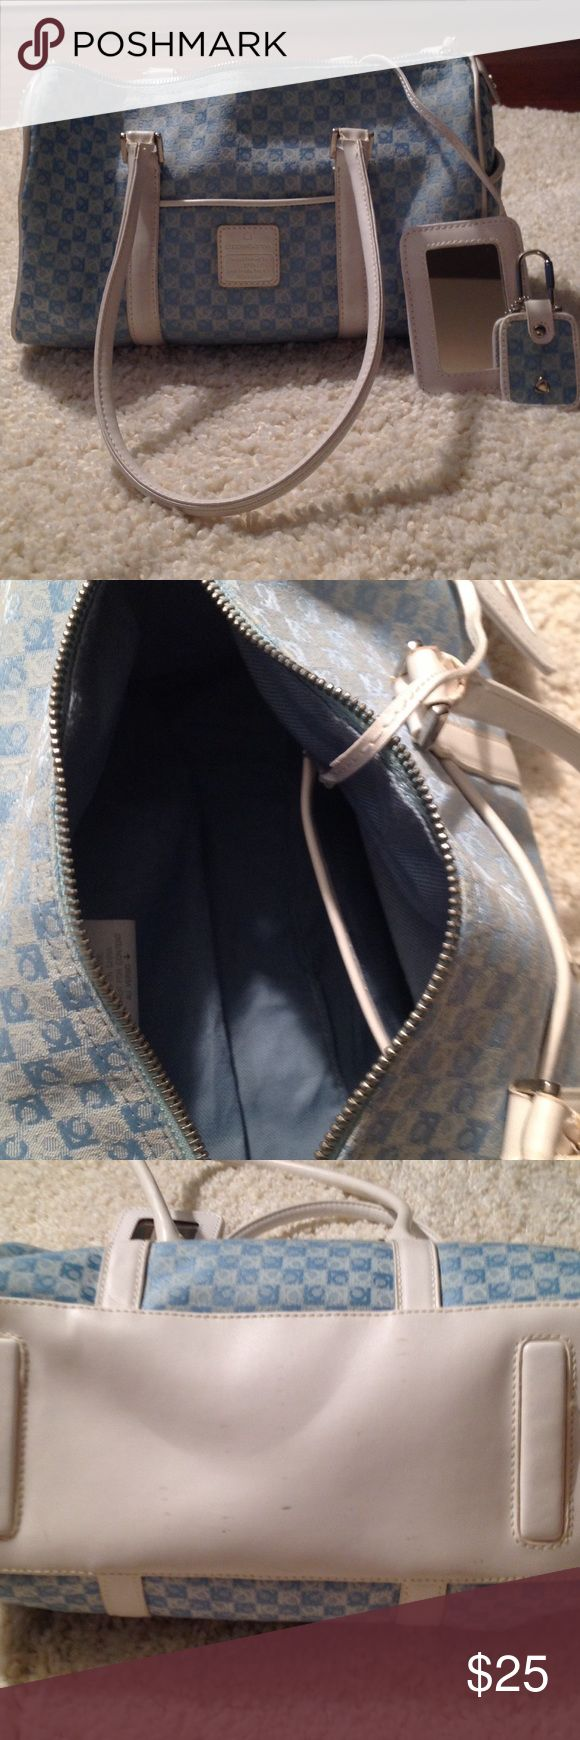 Liz Claiborne Handbag with accessories Attached mirror, key fob, exterior pocket on each end, small pocket on front of bag, 11 inches long, 6 1/2 inches high, 5 1/2 inches deep, no interior wear and tear, handles have some wear and bottom has wear. Refer to picture 3 AND 4 for wear. Zipper compartment inside. Liz Claiborne Bags Shoulder Bags